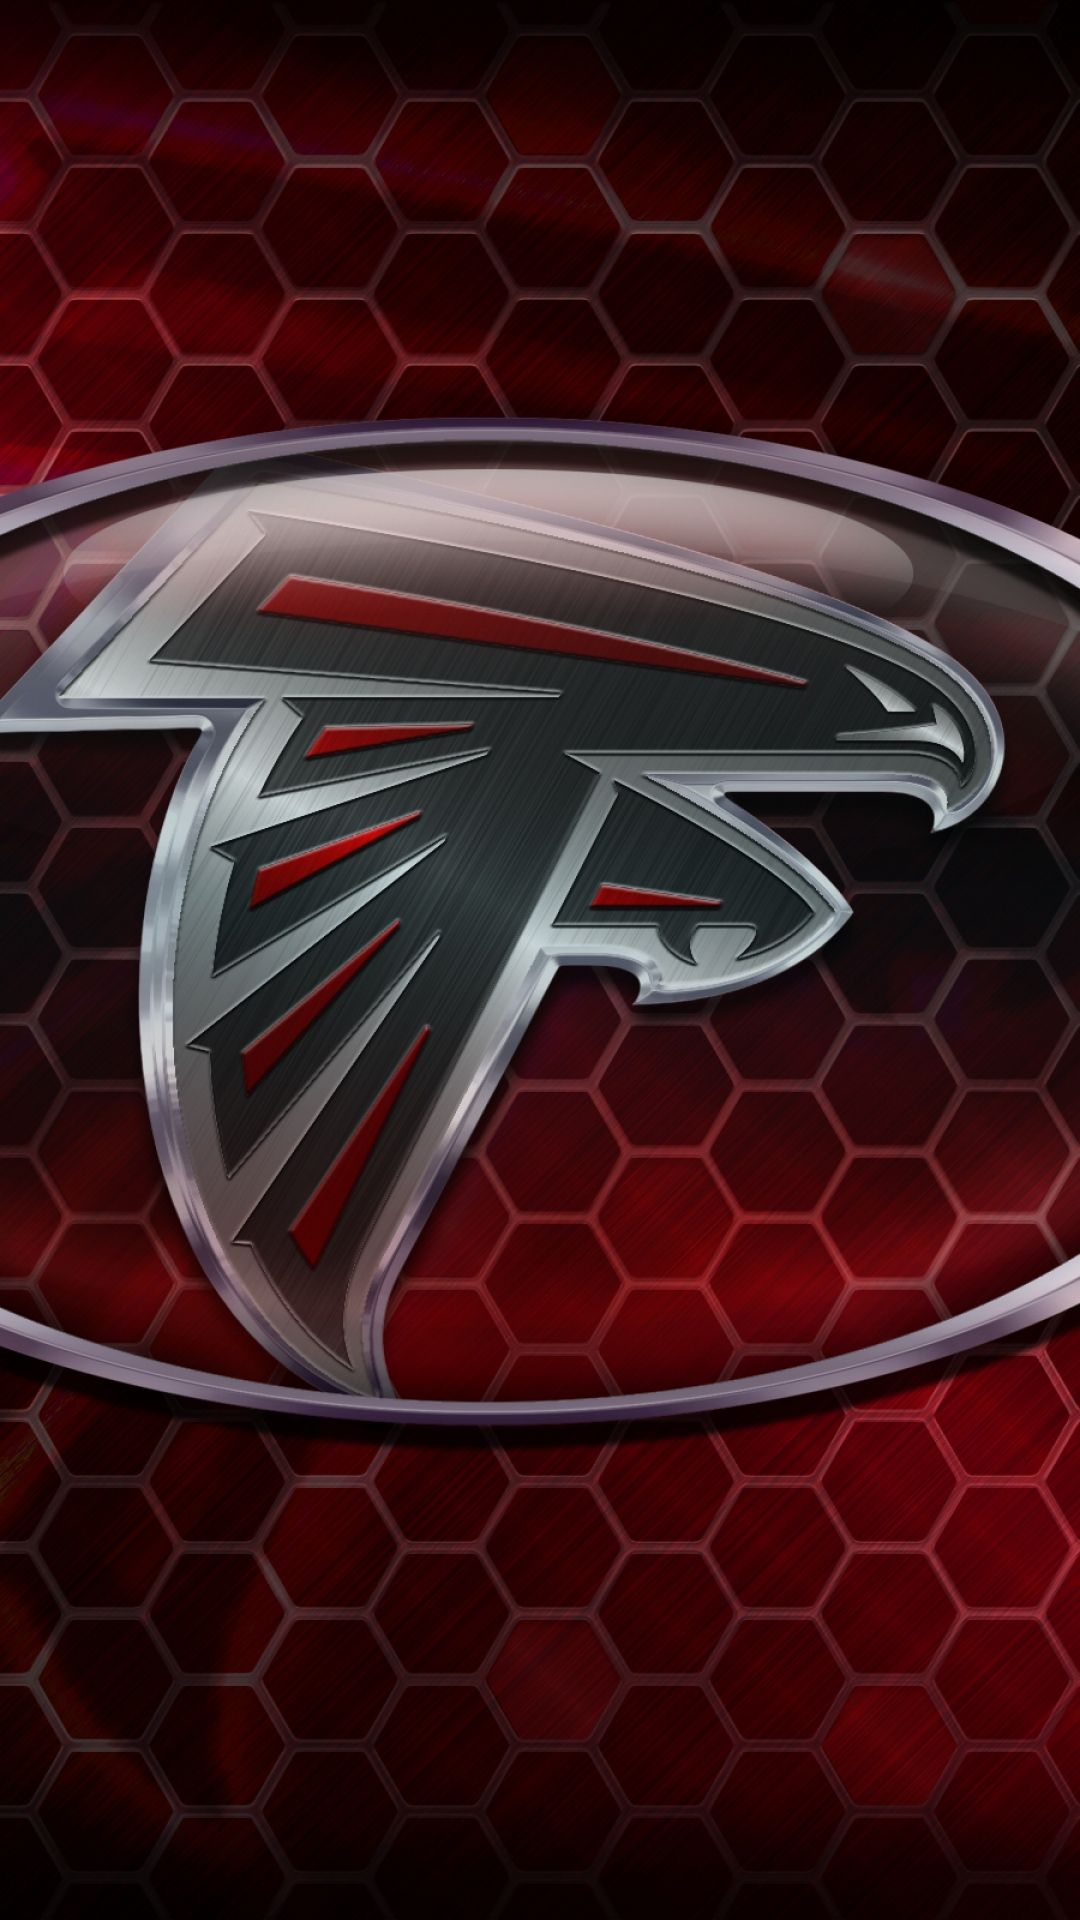 Atlanta Falcons Hd Wallpaper For Android Atlanta Falcons Logo Atlanta Falcons Wallpaper Atlanta Falcons